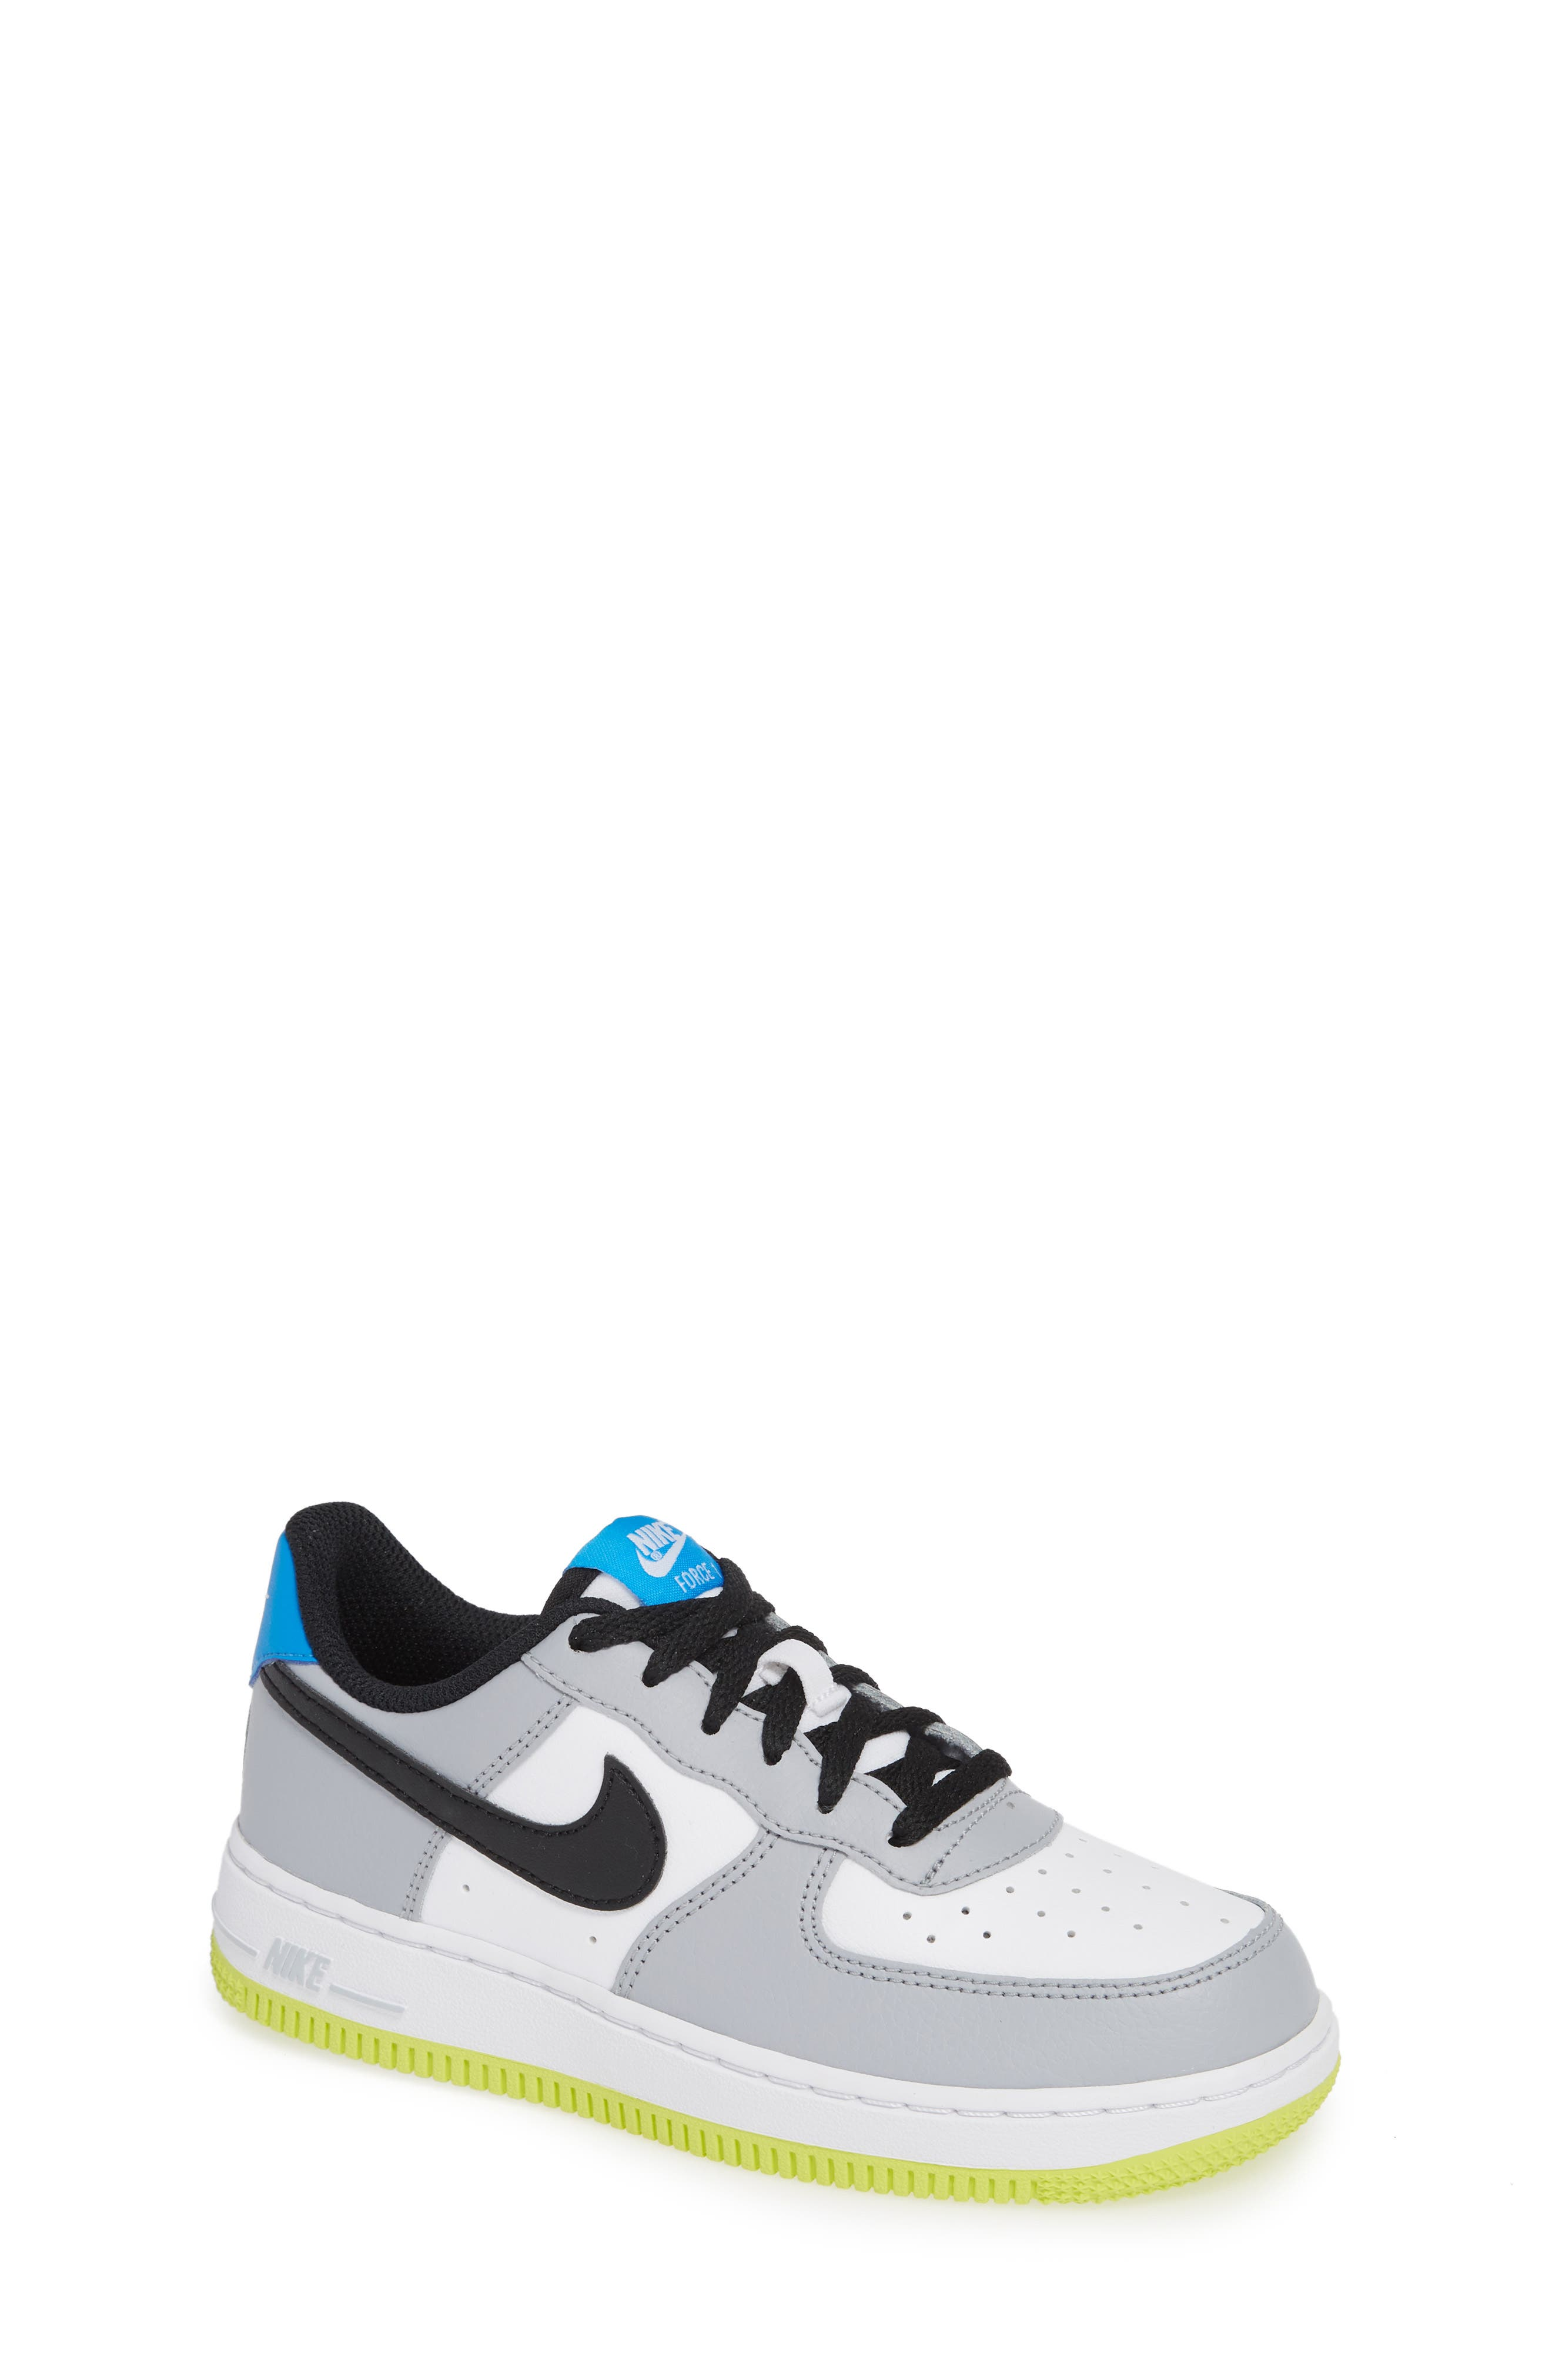 Air Force 1 Sneaker,                             Main thumbnail 1, color,                             Wolf Grey/ Black/ White/ Blue